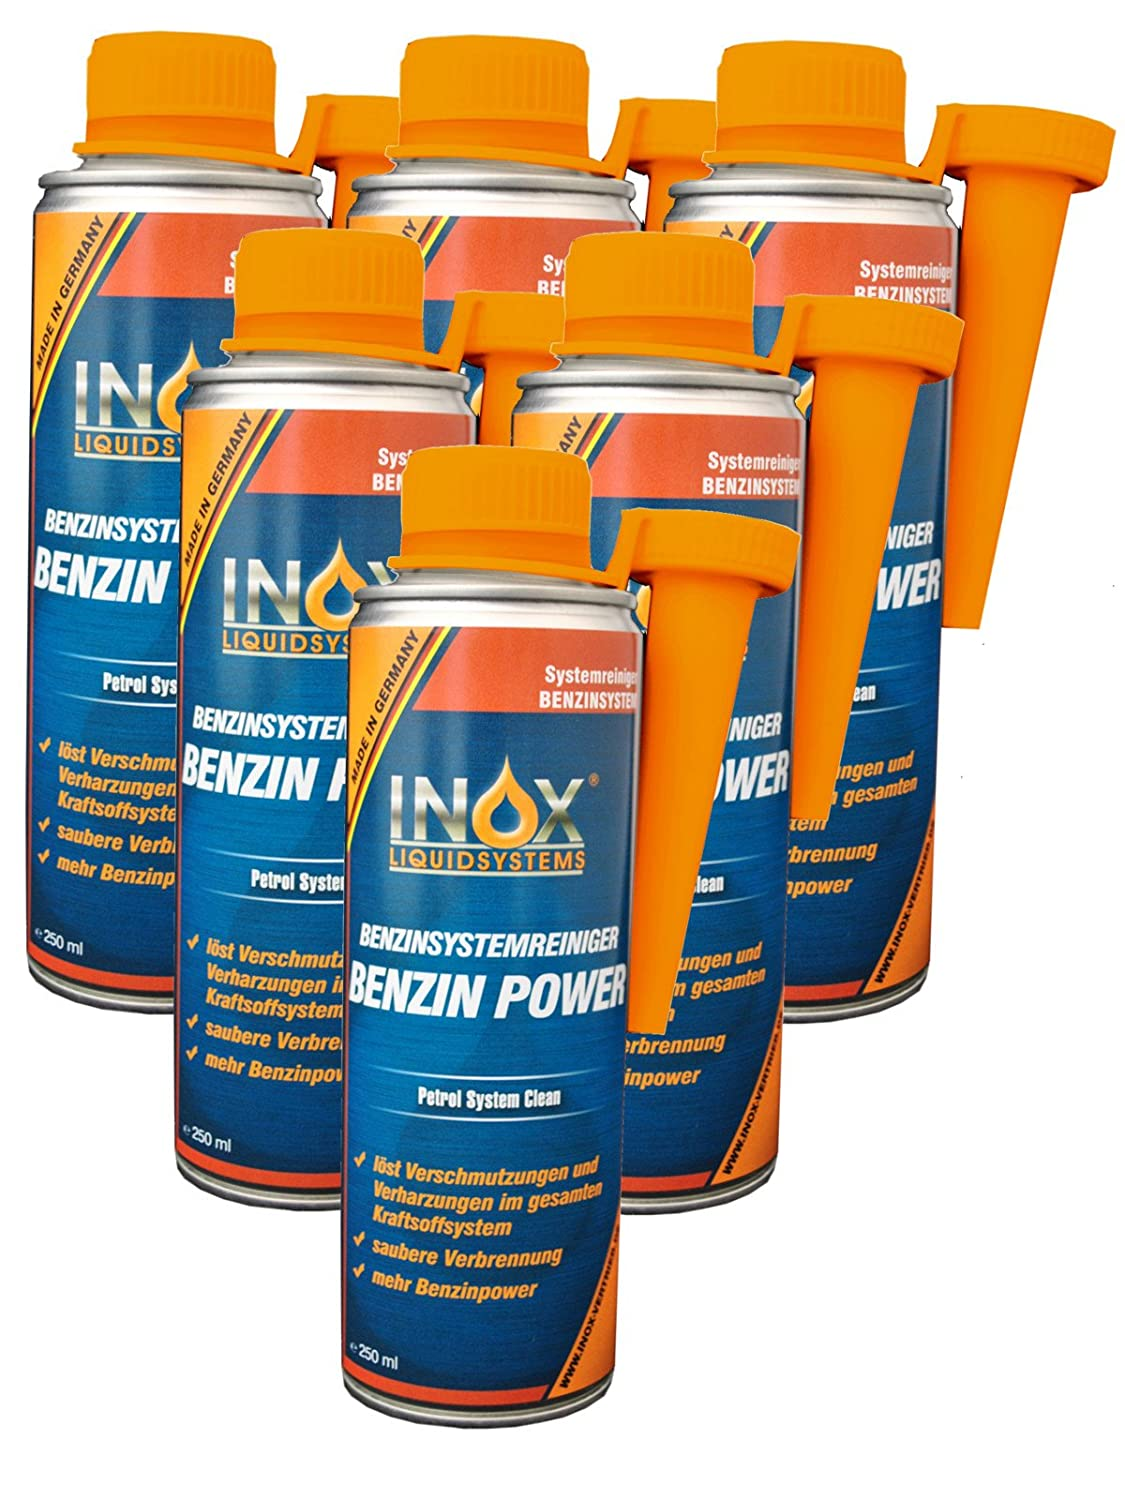 INOX Benzin Power Additiv, 6 x 250ml - Zusatz fü r alle Normal- und Superbenziner